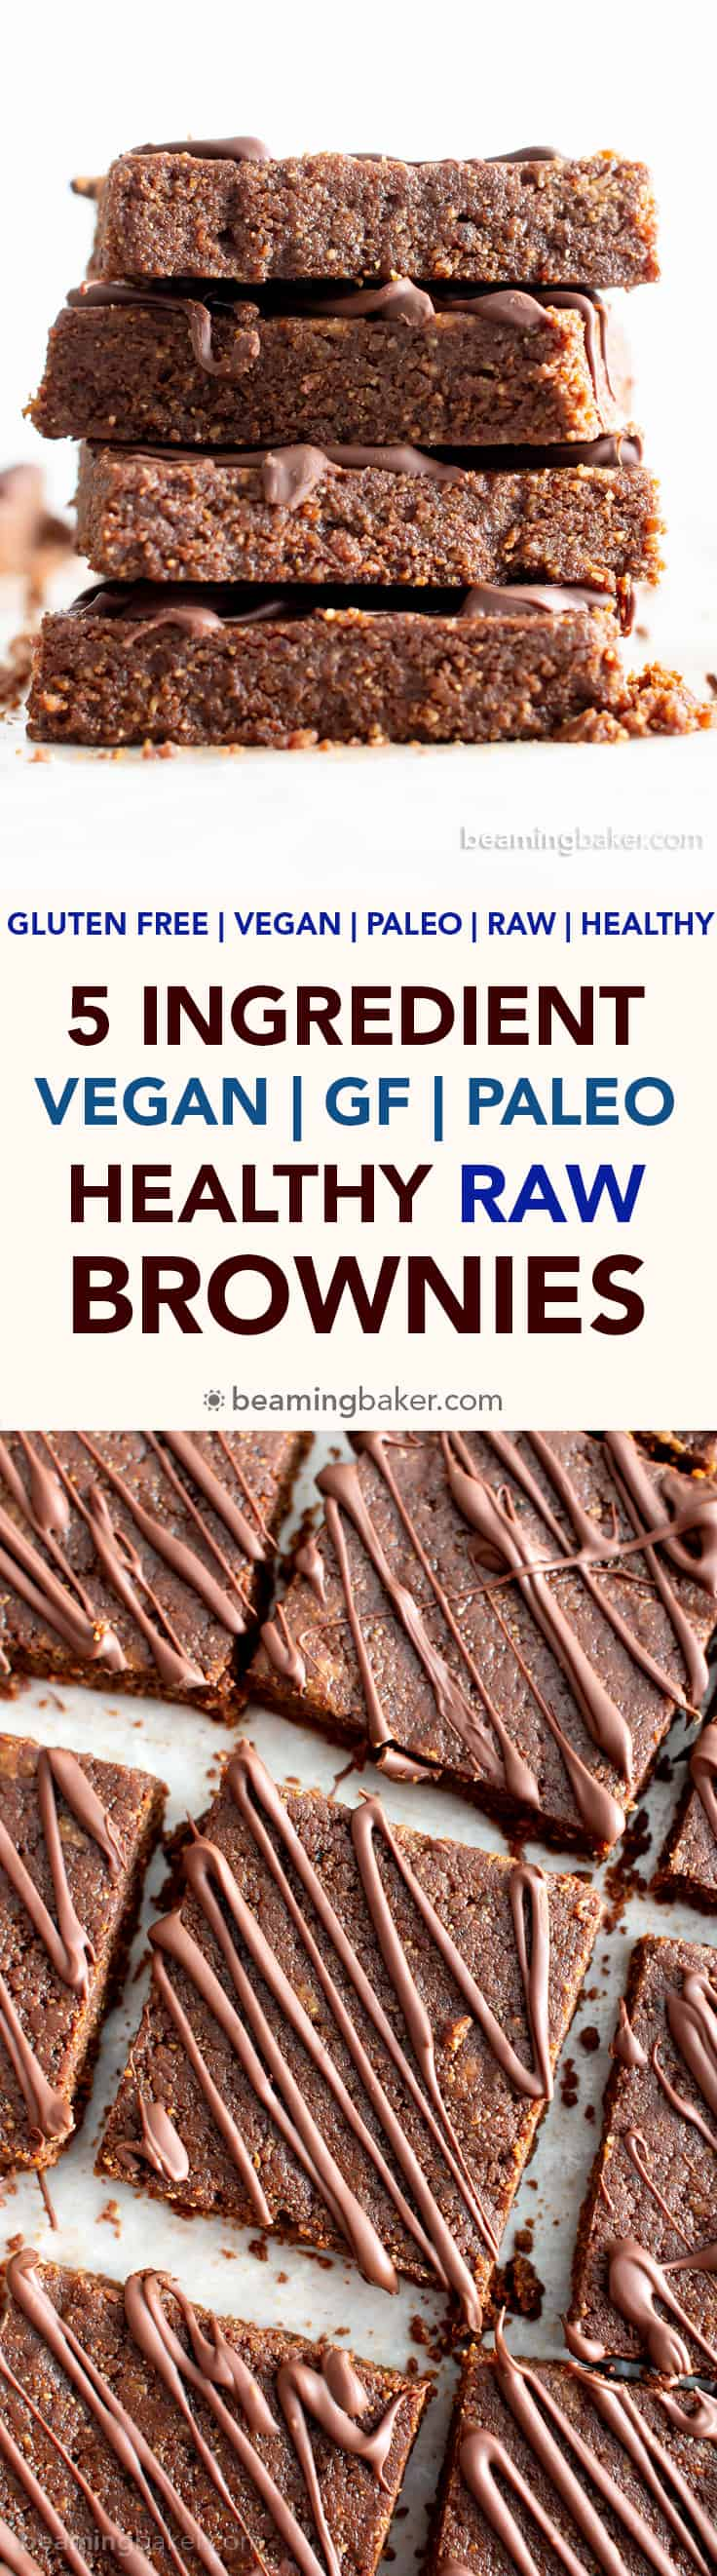 5 Ingredient Raw Vegan Brownies (No Bake, GF): this no bake healthy raw brownies recipe is so easy to make! It's the best raw brownie – gluten-free, no added sugar, and deliciously unbaked! #Brownies #NoBake #Vegan #Raw | Recipe at BeamingBaker.com